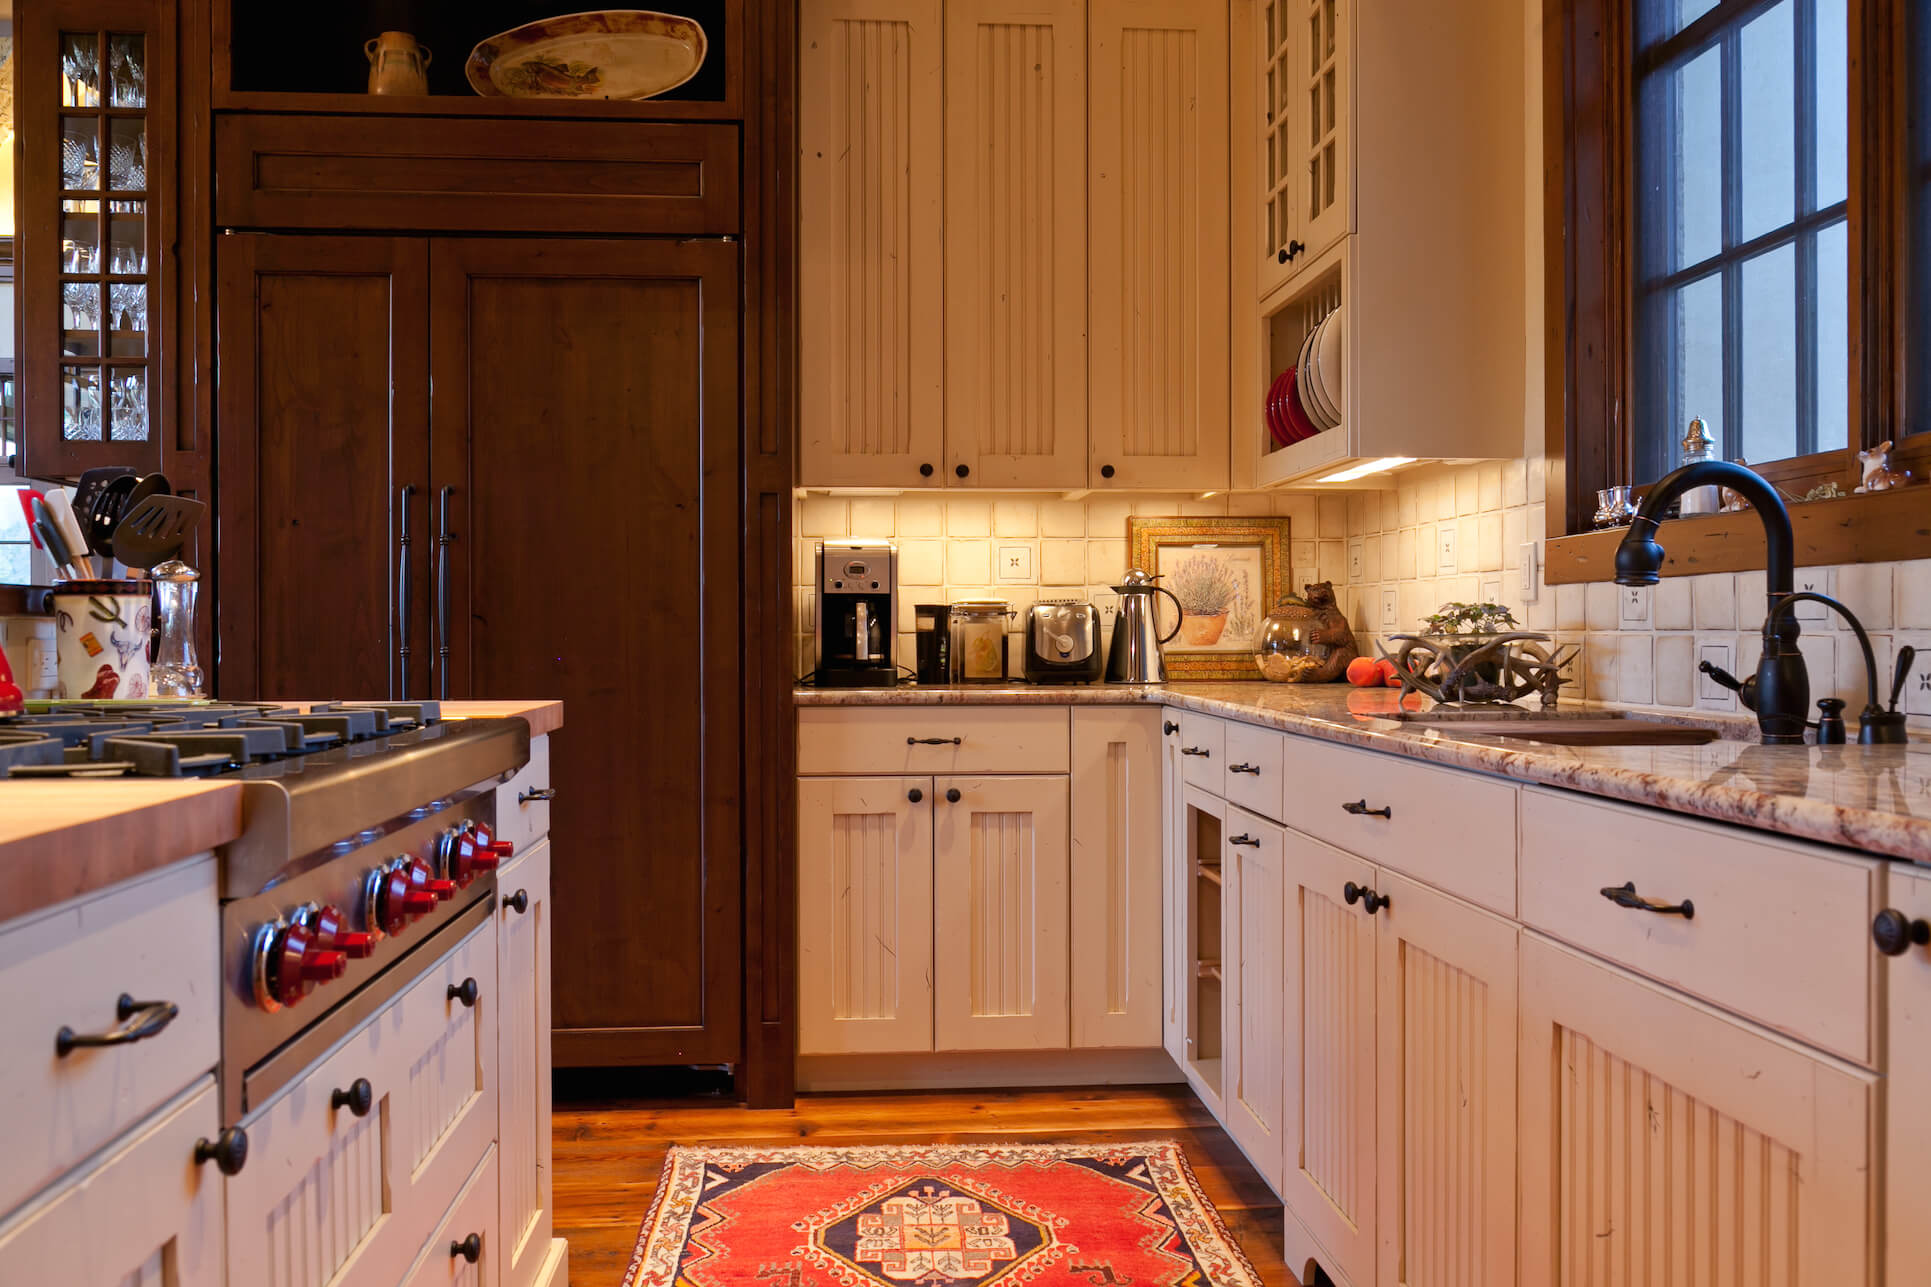 Low view of the kitchen, highlighting warm wood tones, patterned tile backsplash, and black cabinetry hardware.